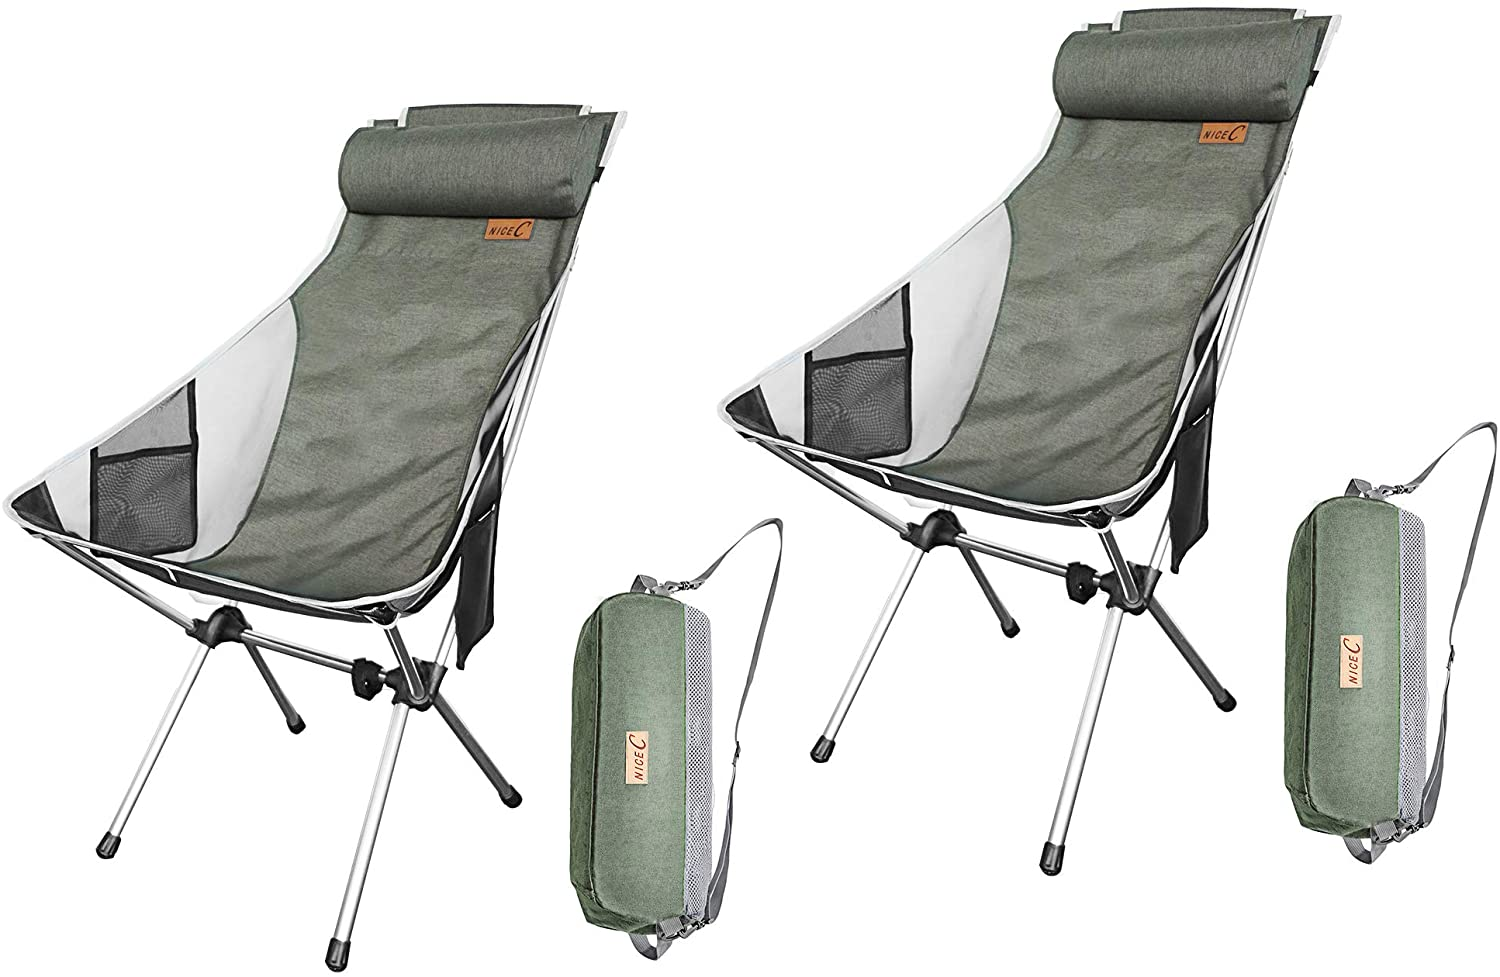 BBQ Camping Backpacking Compact /& Heavy Duty Outdoor Travel Beach Outdoor Picnic Nice C Ultralight High Back Folding Camping Chair Festival with Carry Bag with Headrest